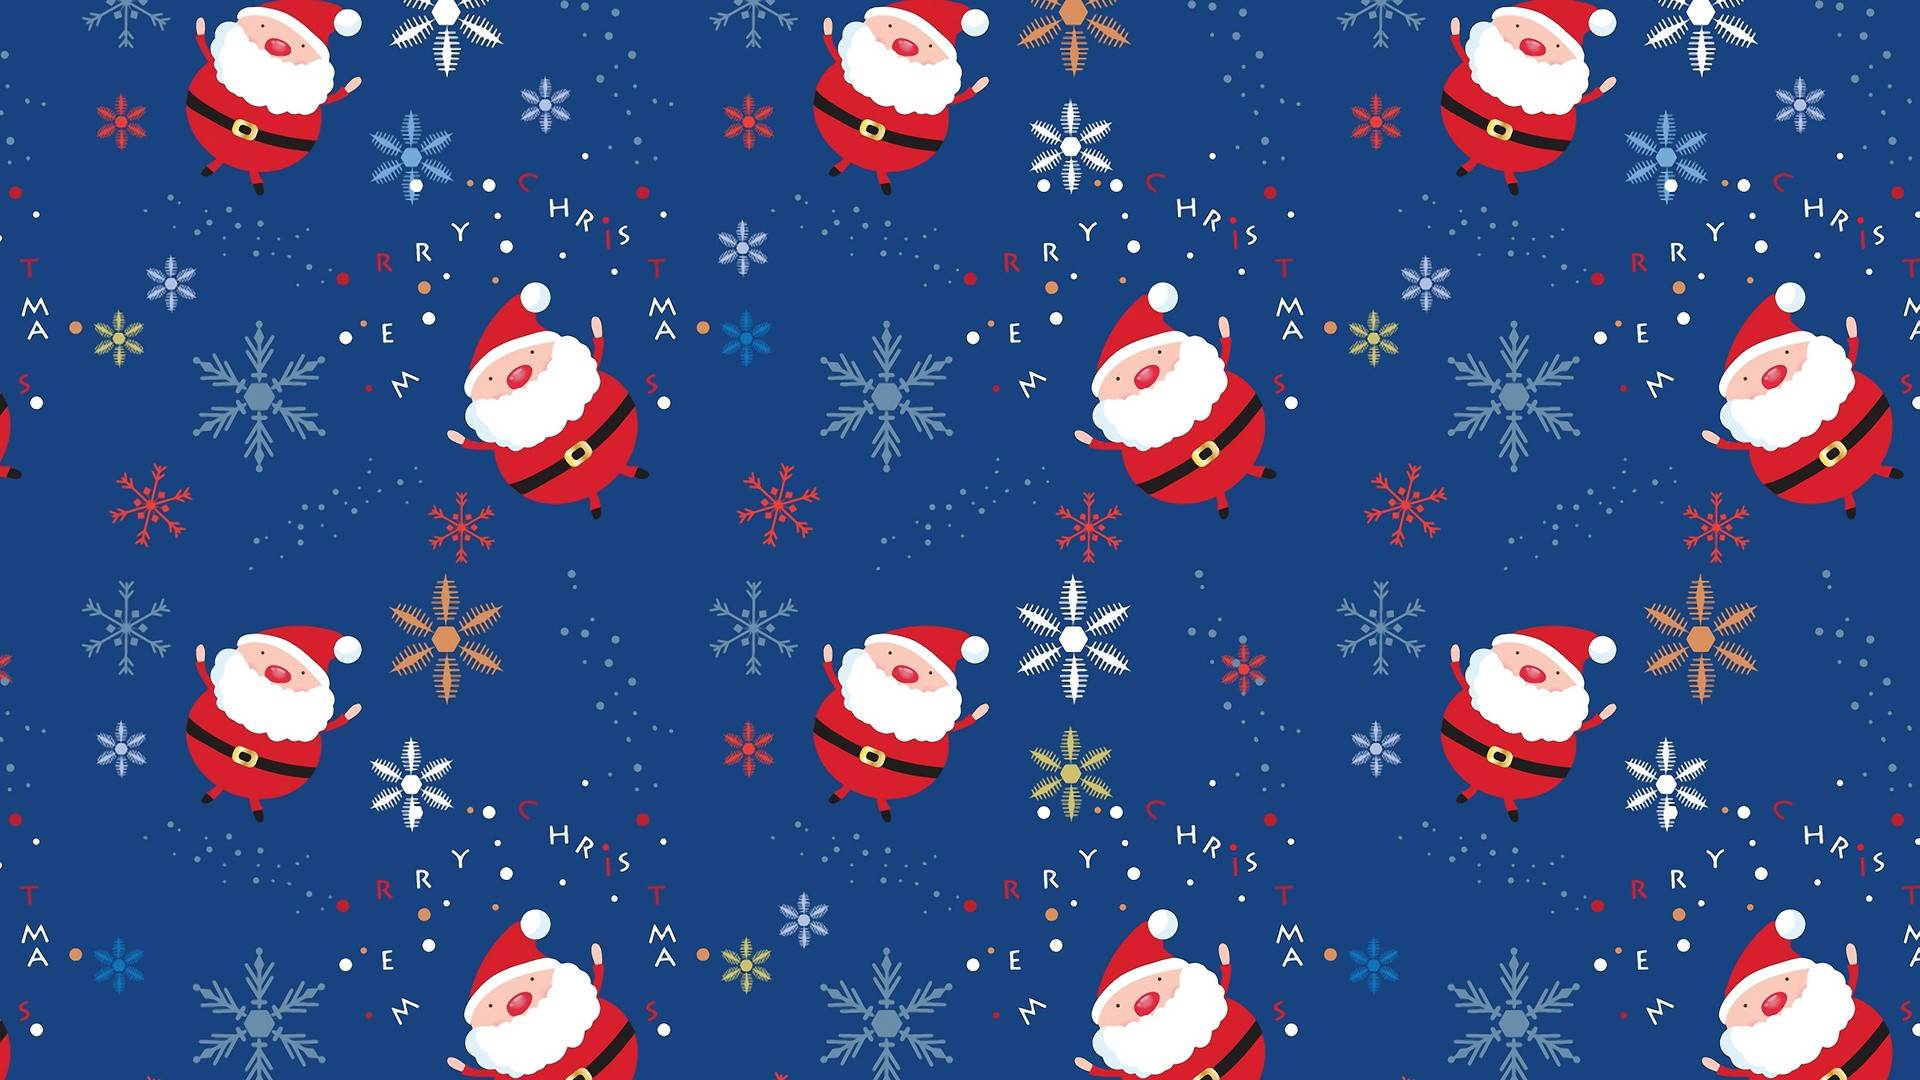 HD Cute Christmas Background Amazing Images Smart Phone Background 1920x1080